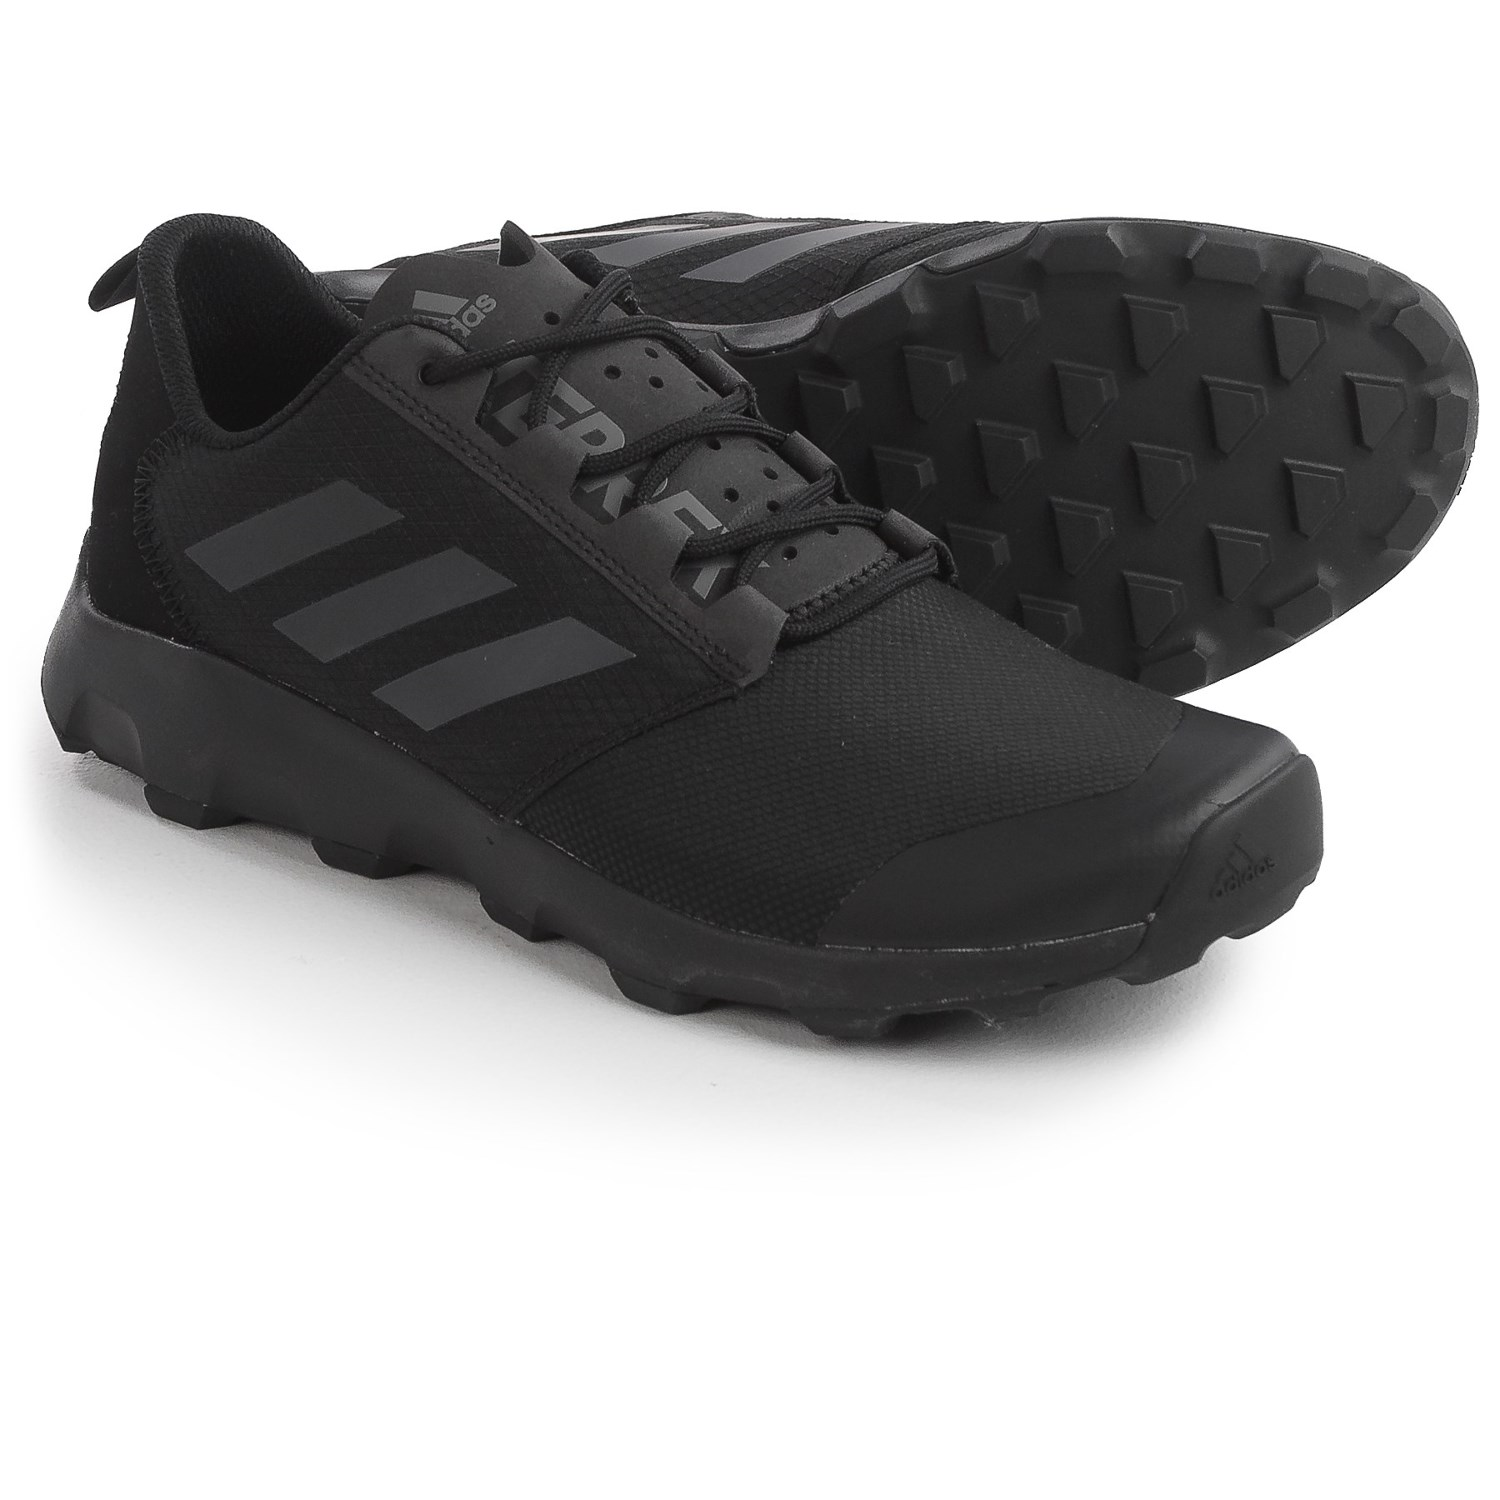 6f3dc7f48beaea ... outdoor sports sneakers  adidas terrex voyager dlx trail running shoes  for men in black vista grey